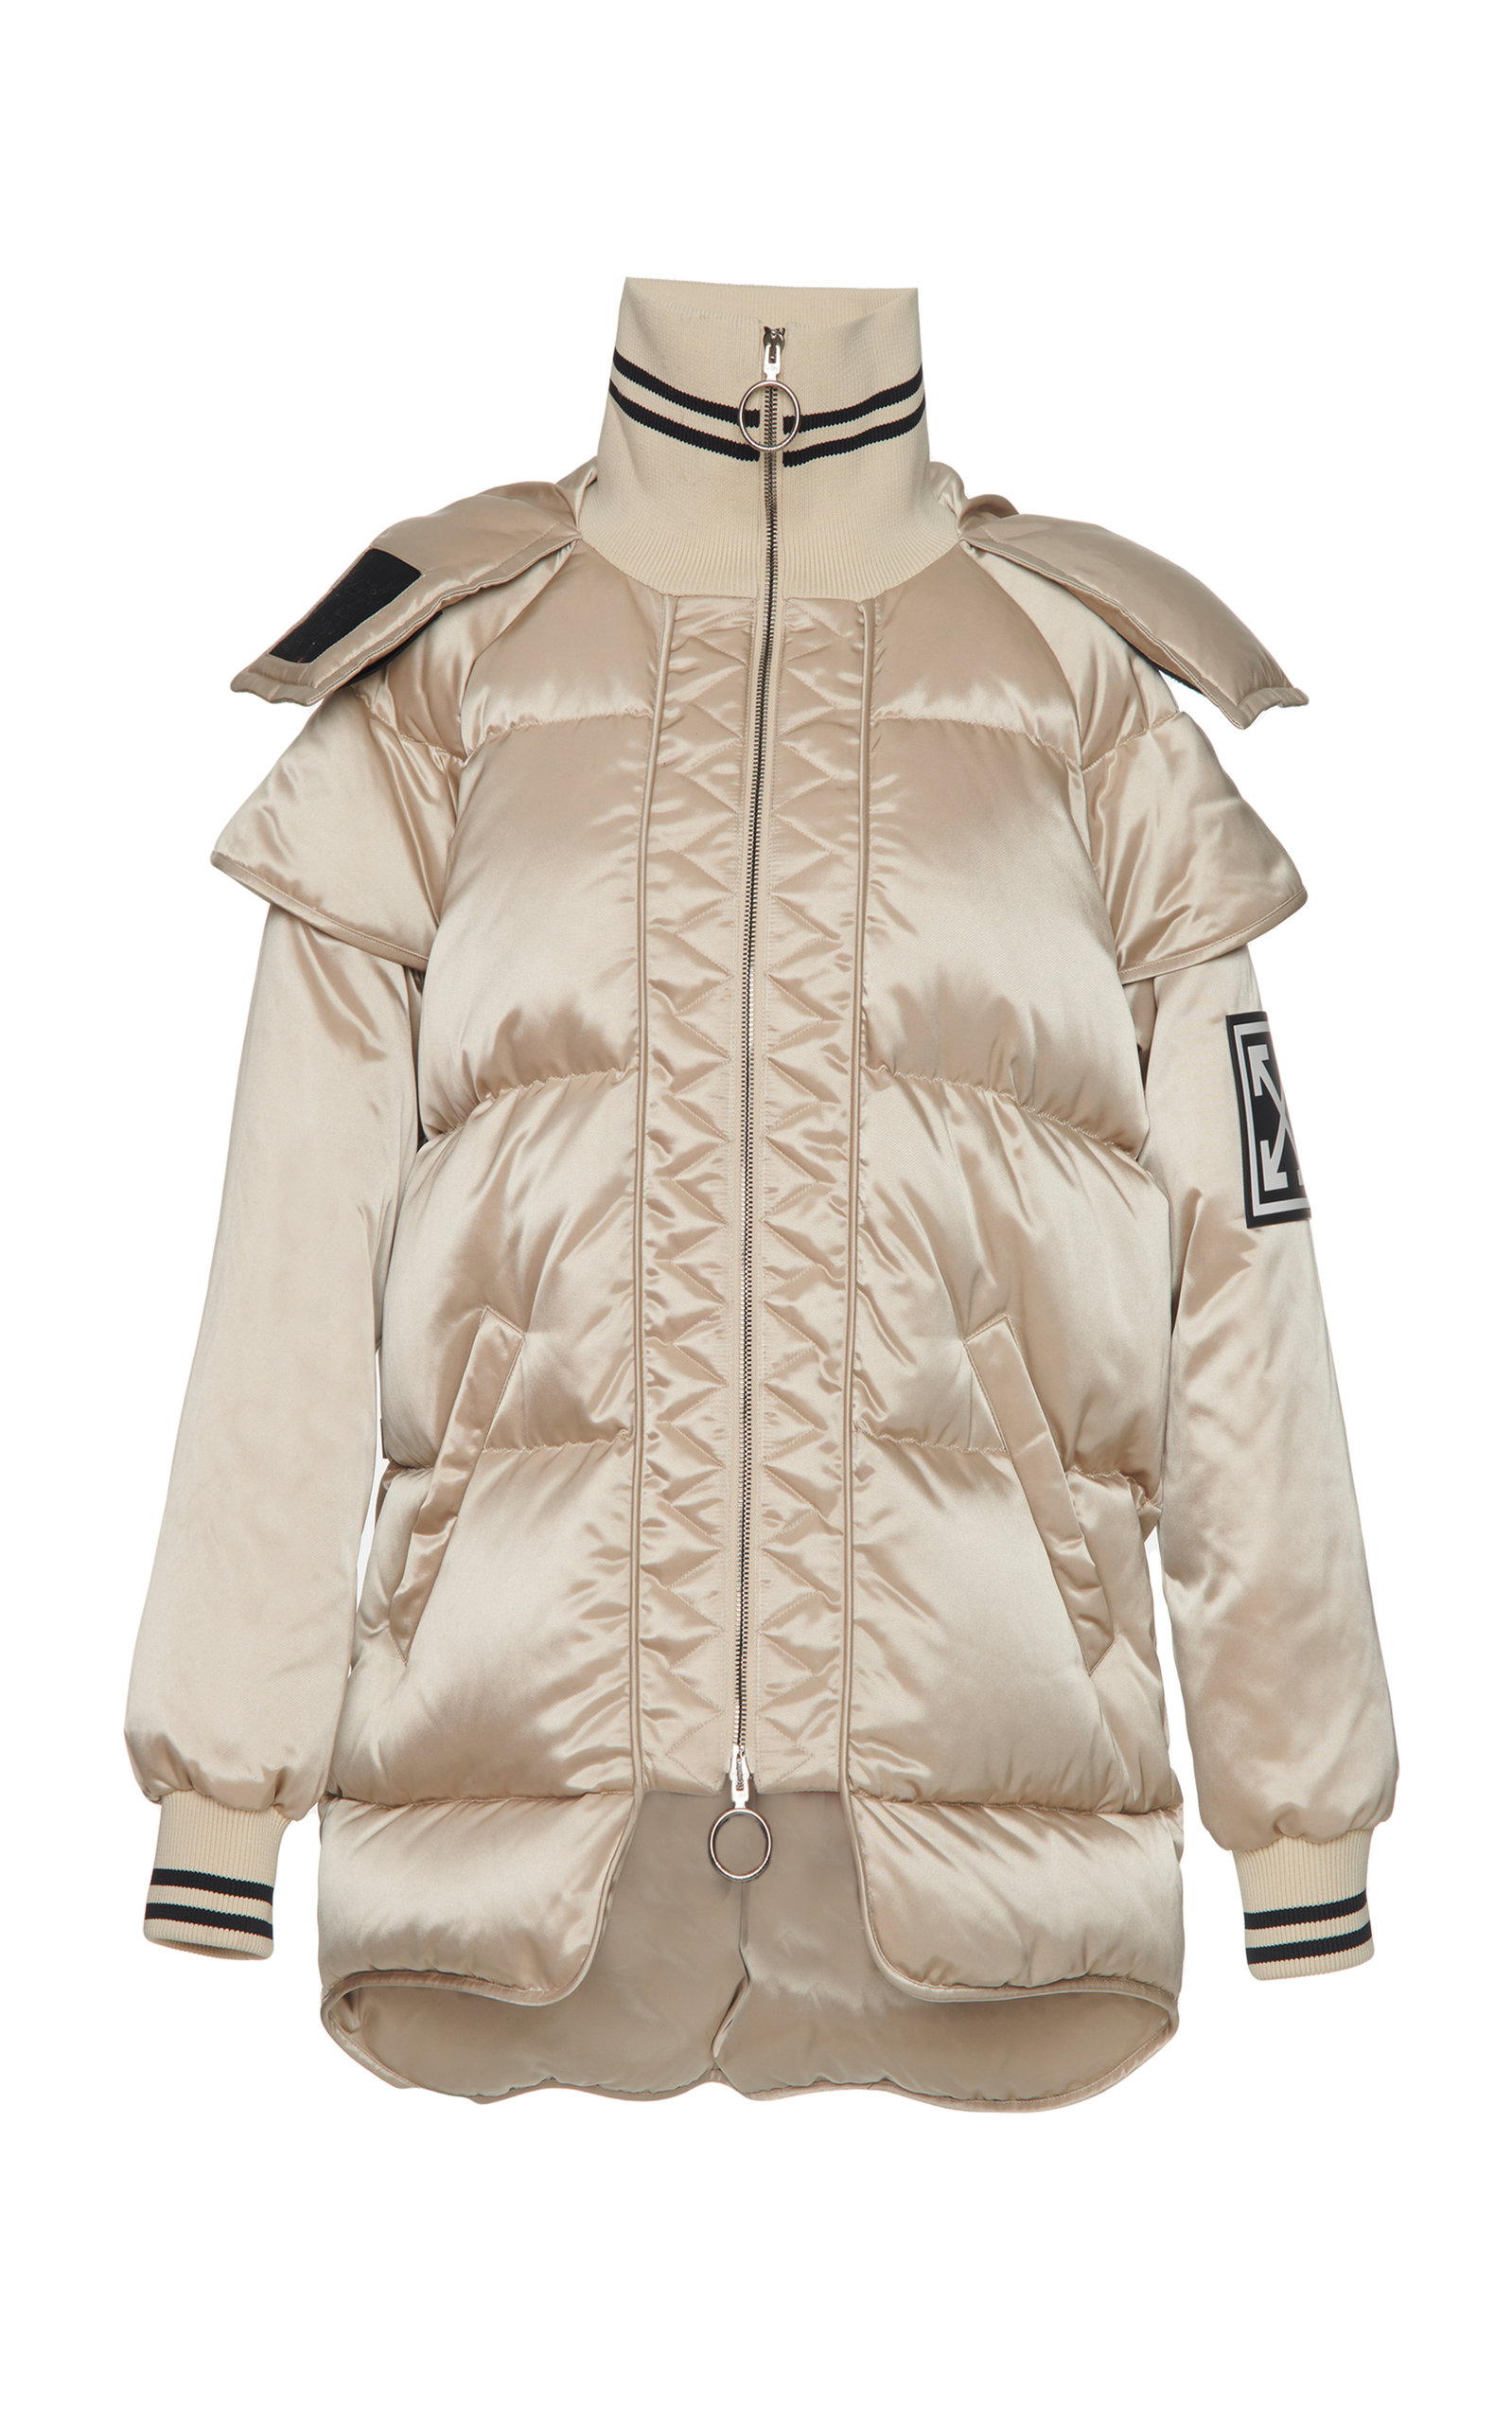 Neutral Coat Technical Off High White In Puffer Neck xOgq0g4B